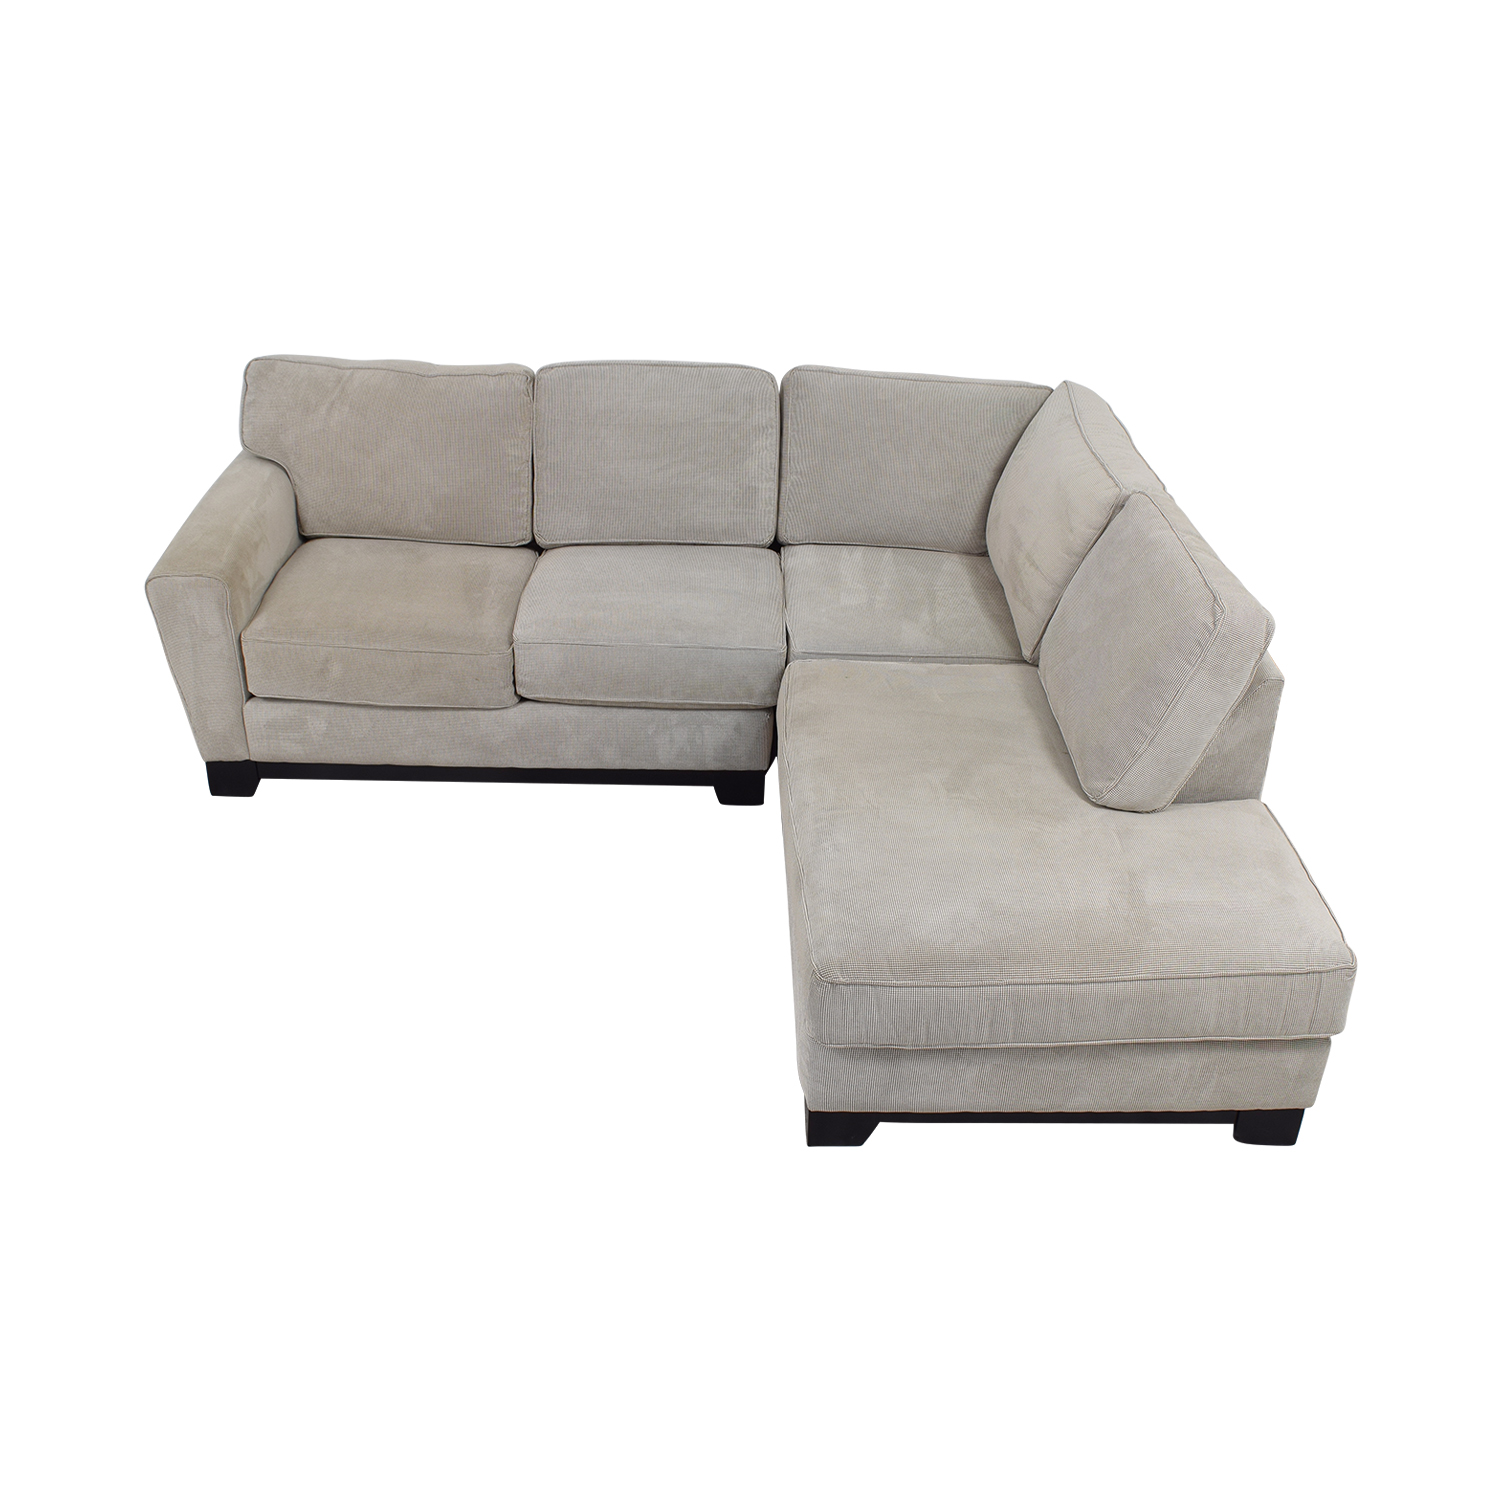 shop Jordan's Furniture Beige L-Shaped Sectional Jordan's Furniture